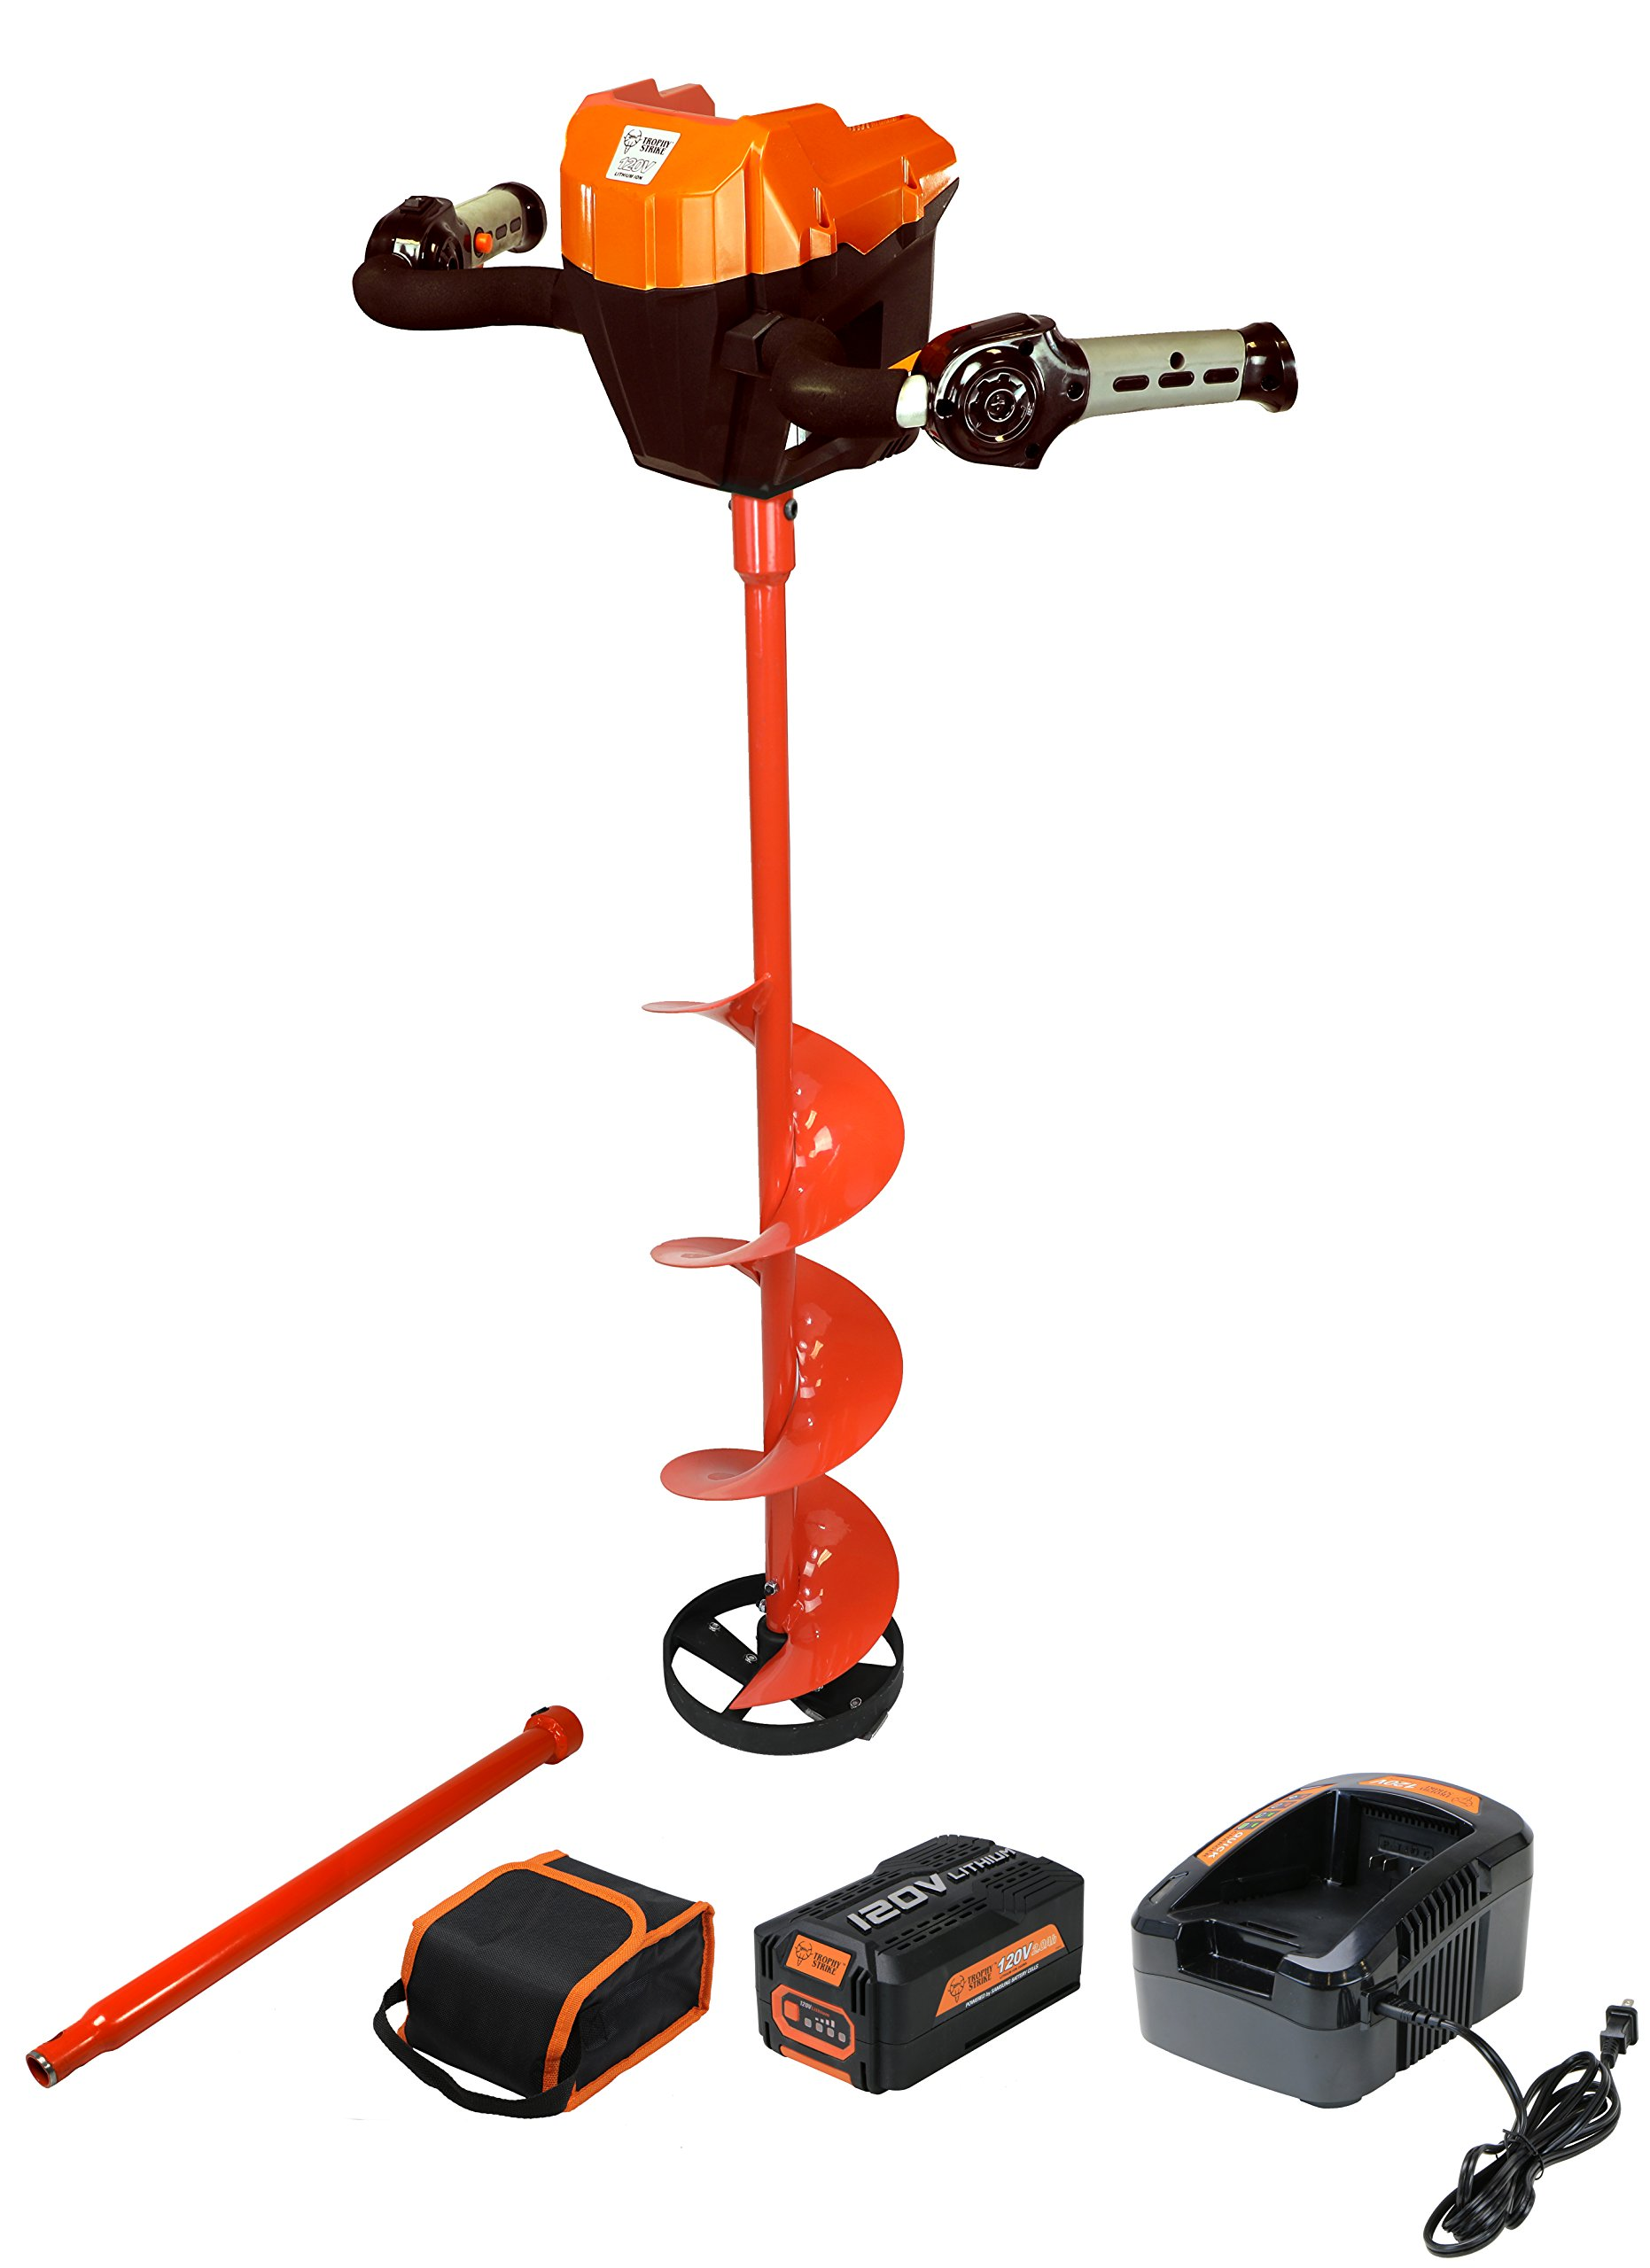 Trophy Strike 120V Lithium Ion Battery Ice Auger - Everything You Need to Start Drilling! by Trophy Strike